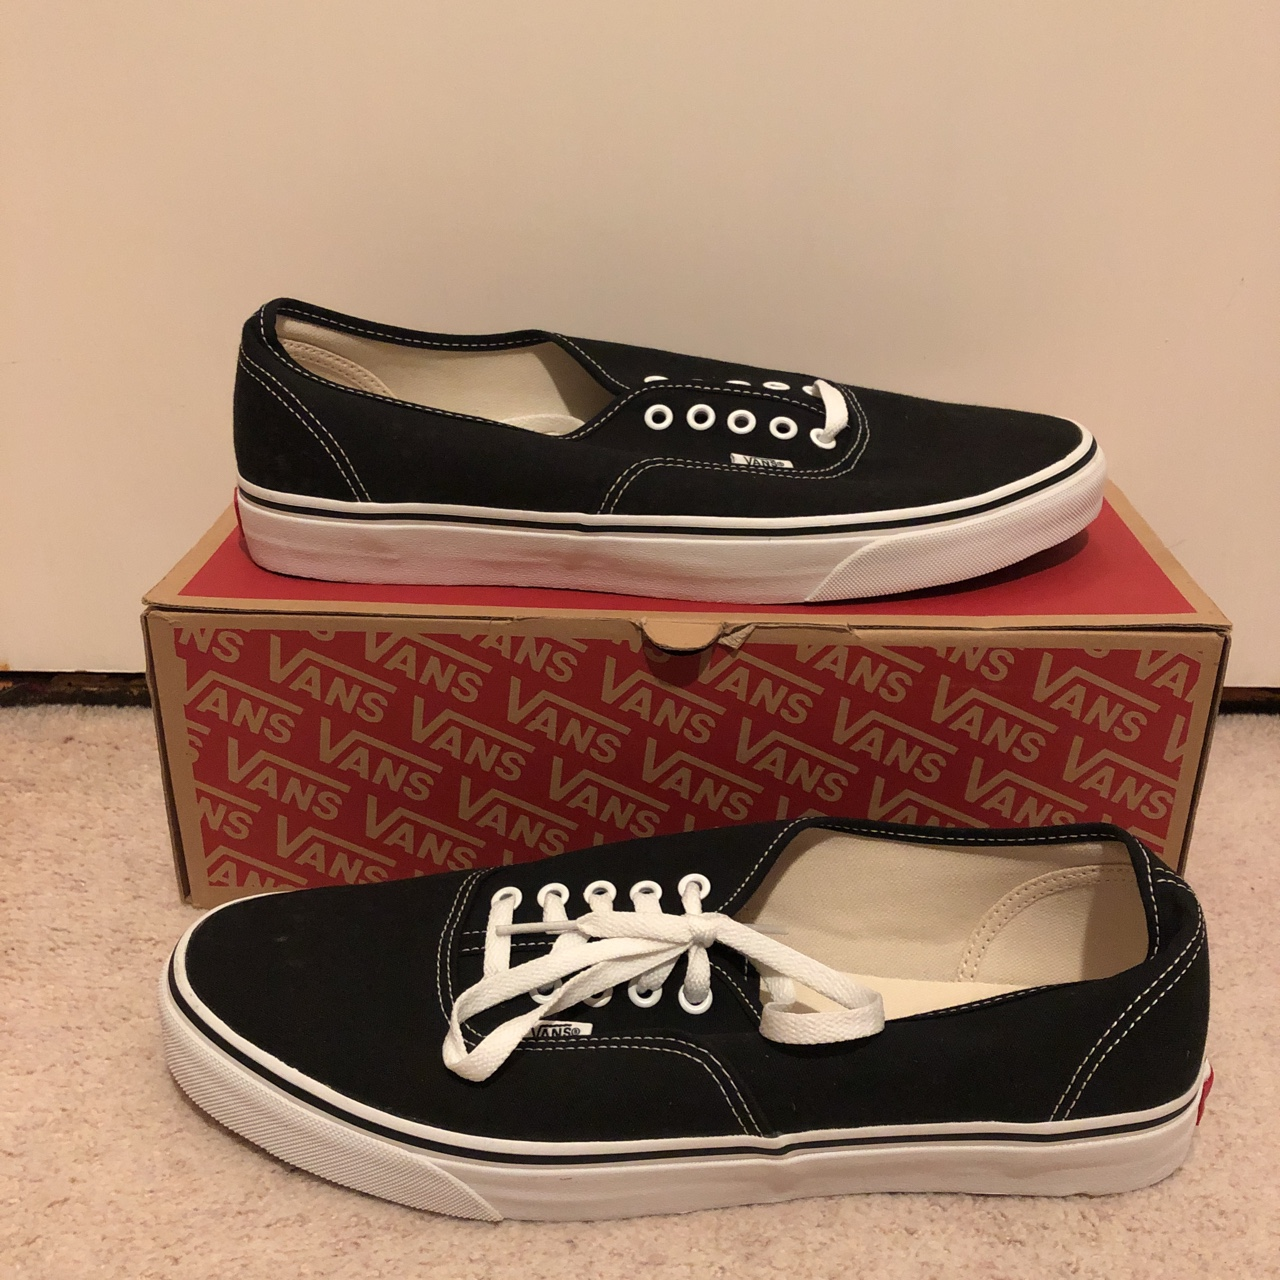 vans size 12 Online Shopping mall   Find the best prices and ...